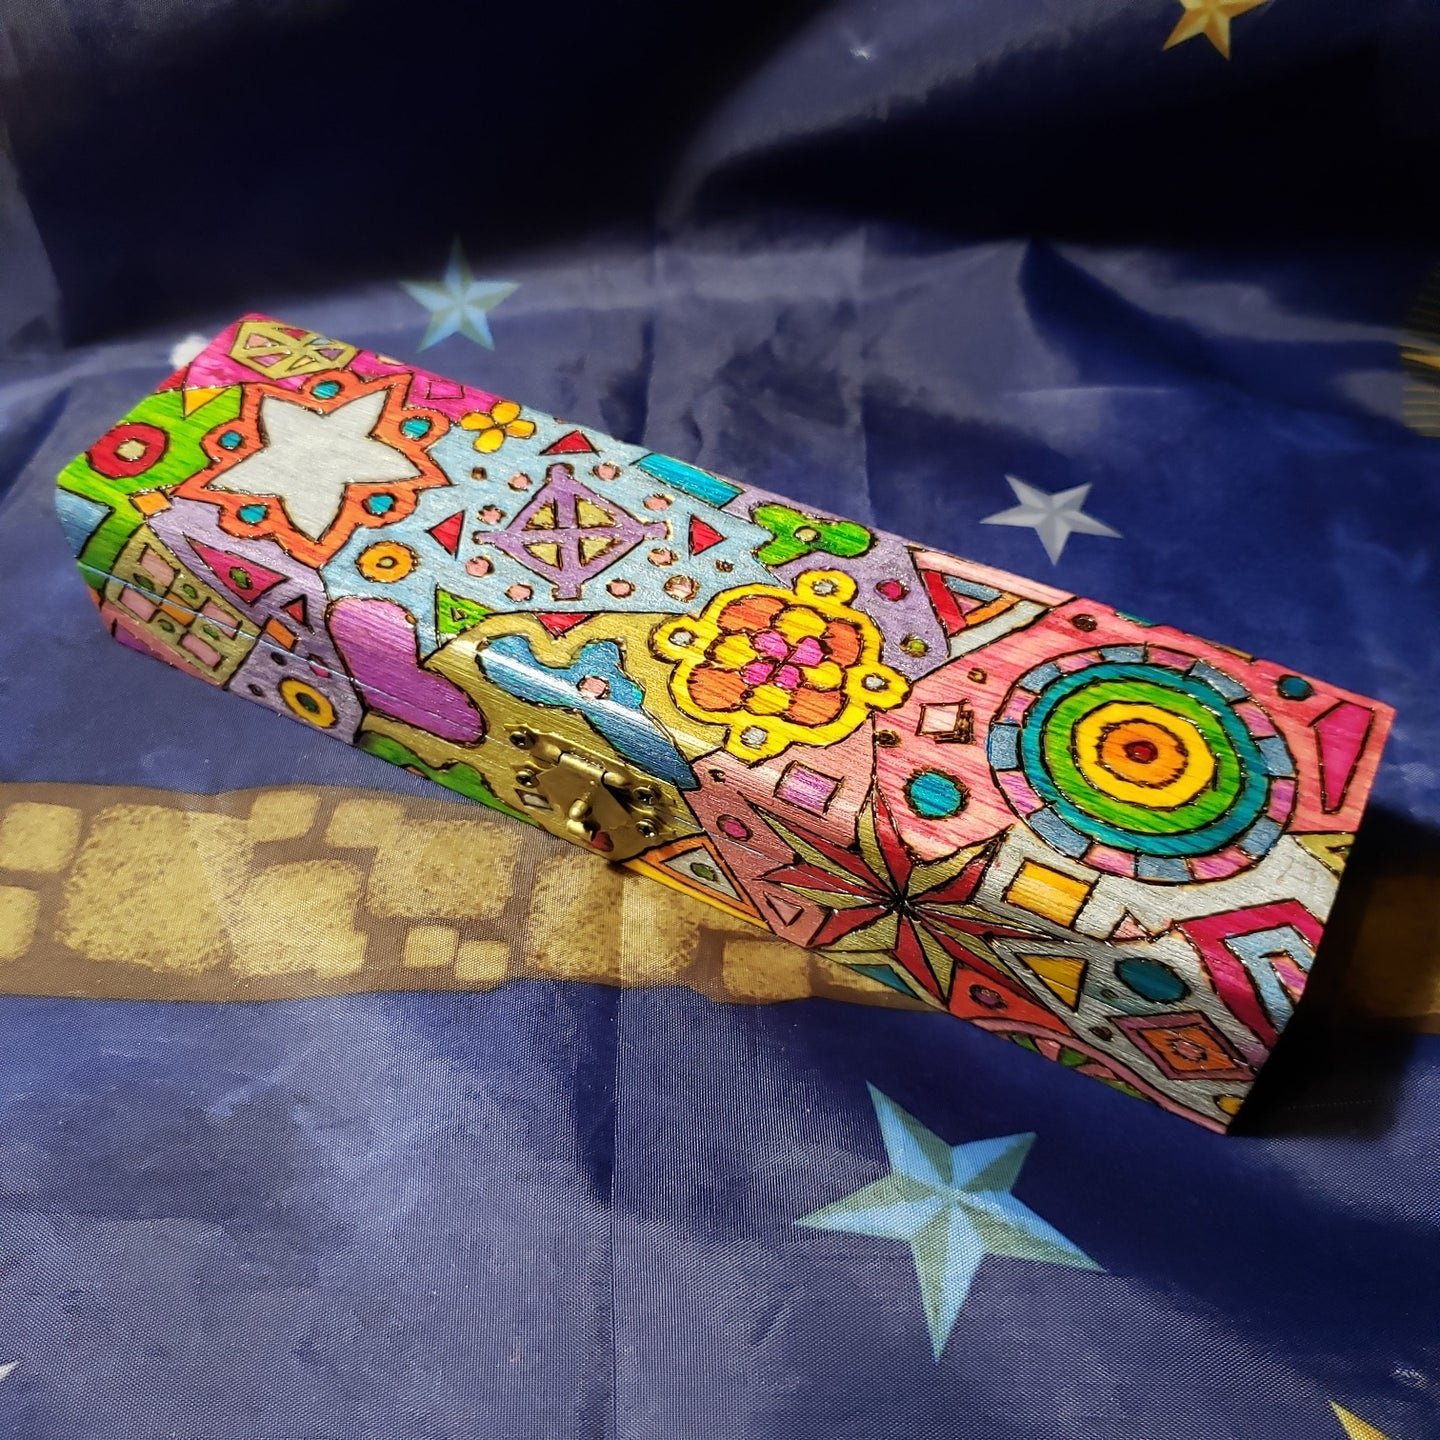 1970s Colorful Woodburned Psychedelic Crystal Case Box / Stash Box